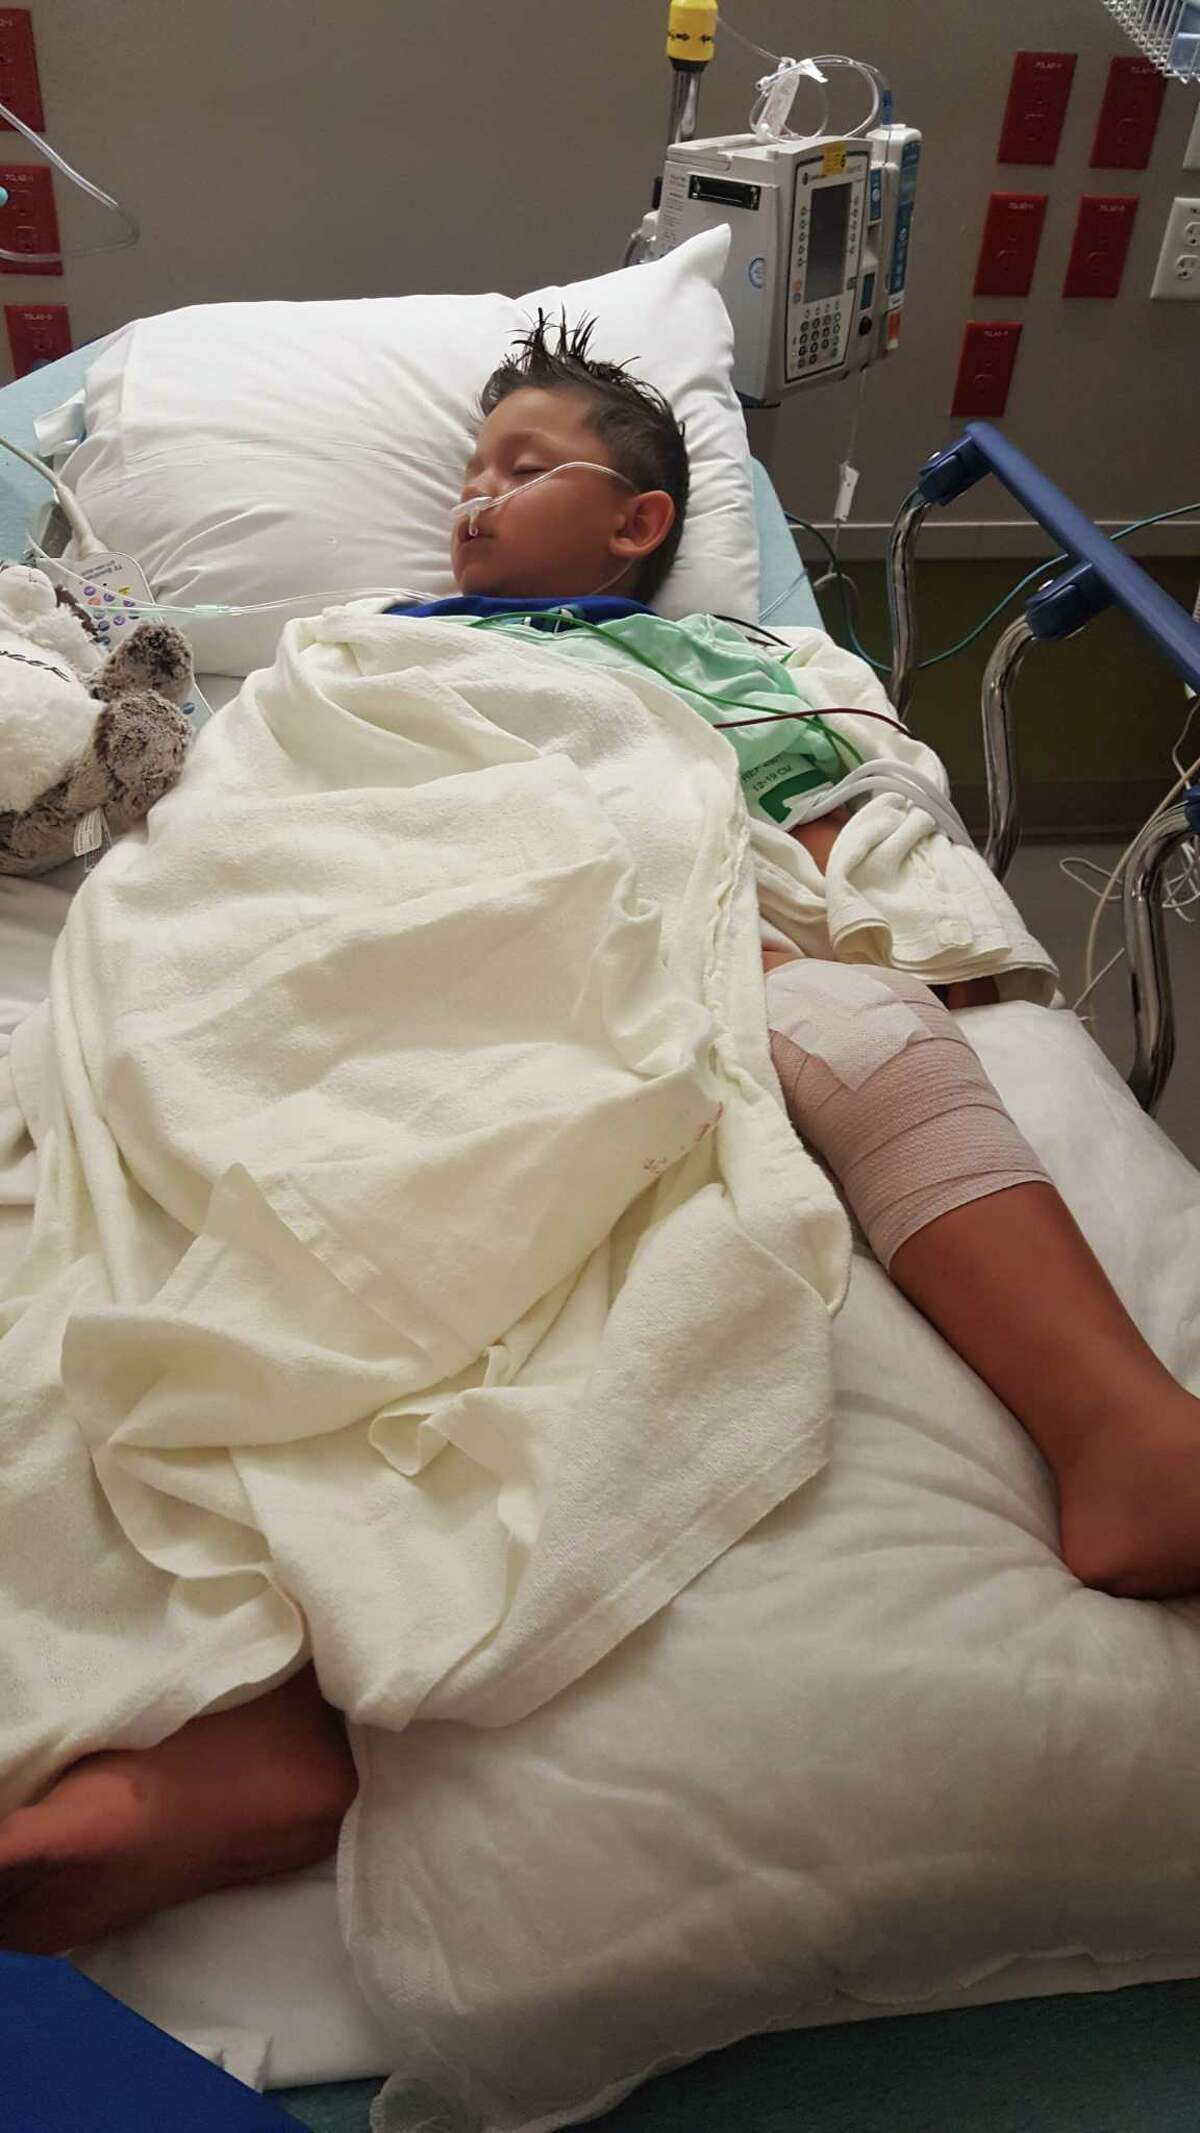 A 4-year-old La Porte boy is recovering from injuries he received July 6 when he was hit by bullet fragments from a gun accidentally discharged by Liberty County Commissioner Greg Arthur at Garner State Park. SLIDESHOW: What Texas' open carry gun law actually says